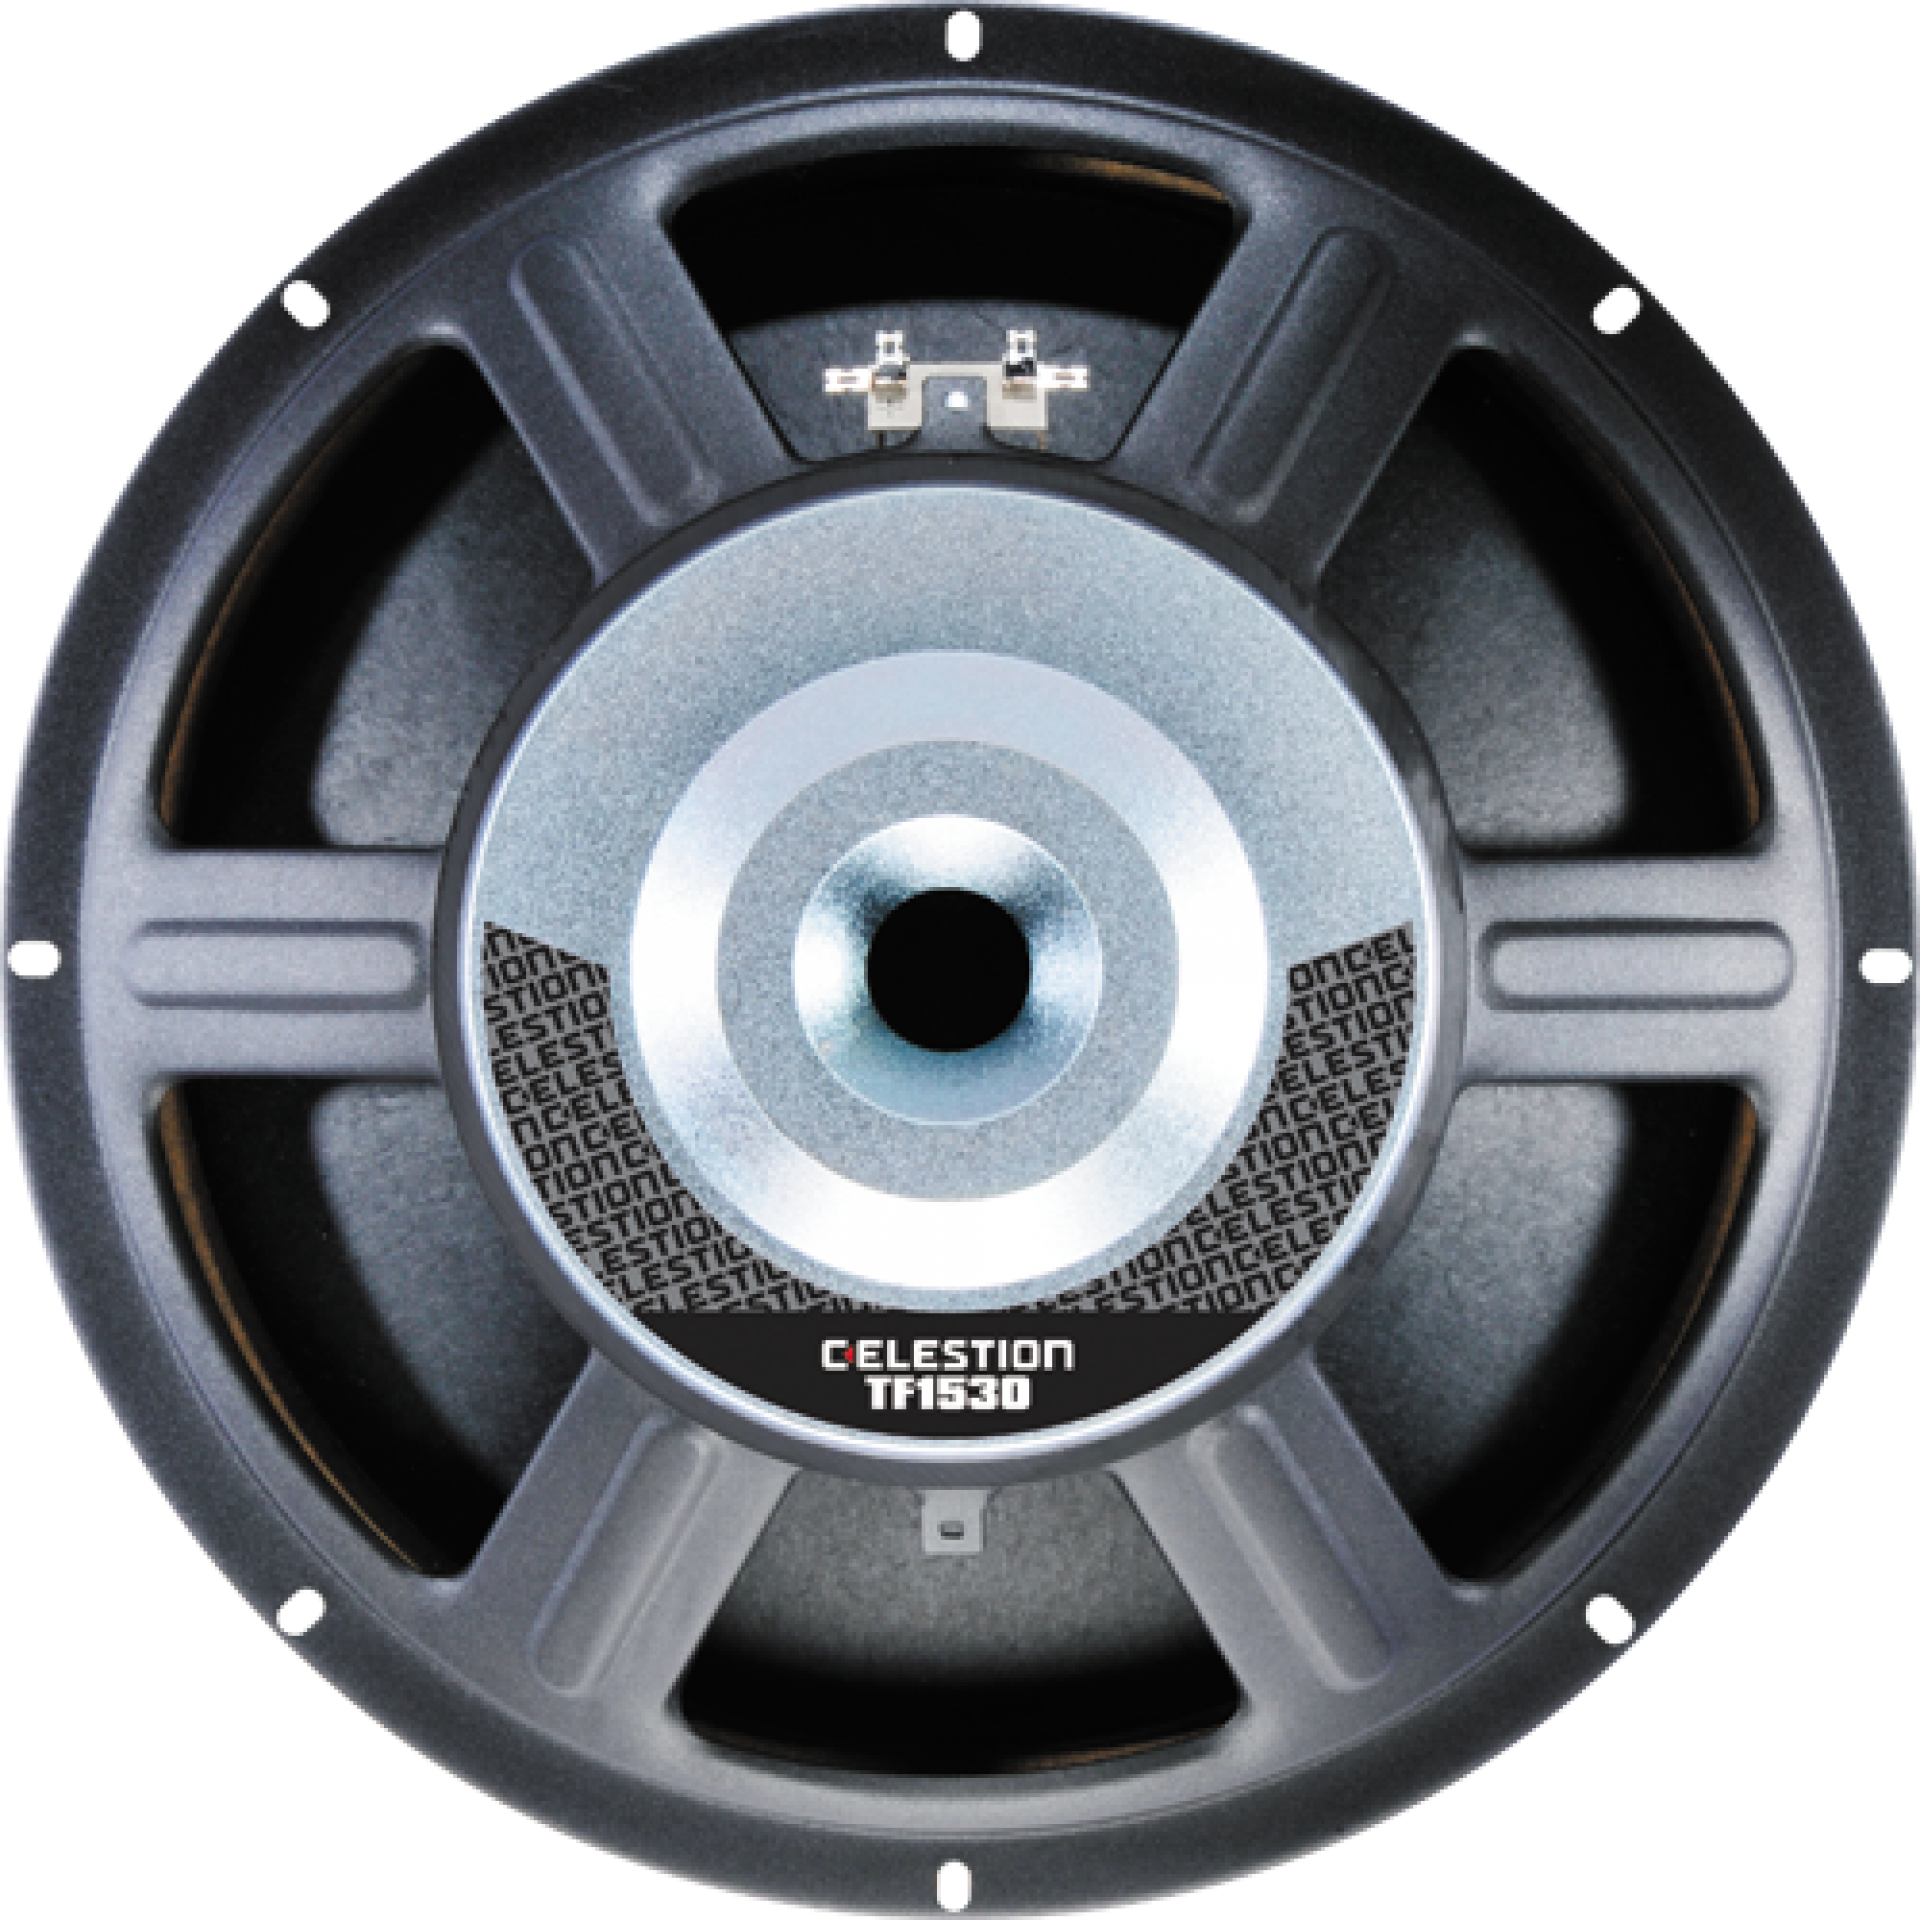 CELESTION TRUVOX TF 1530